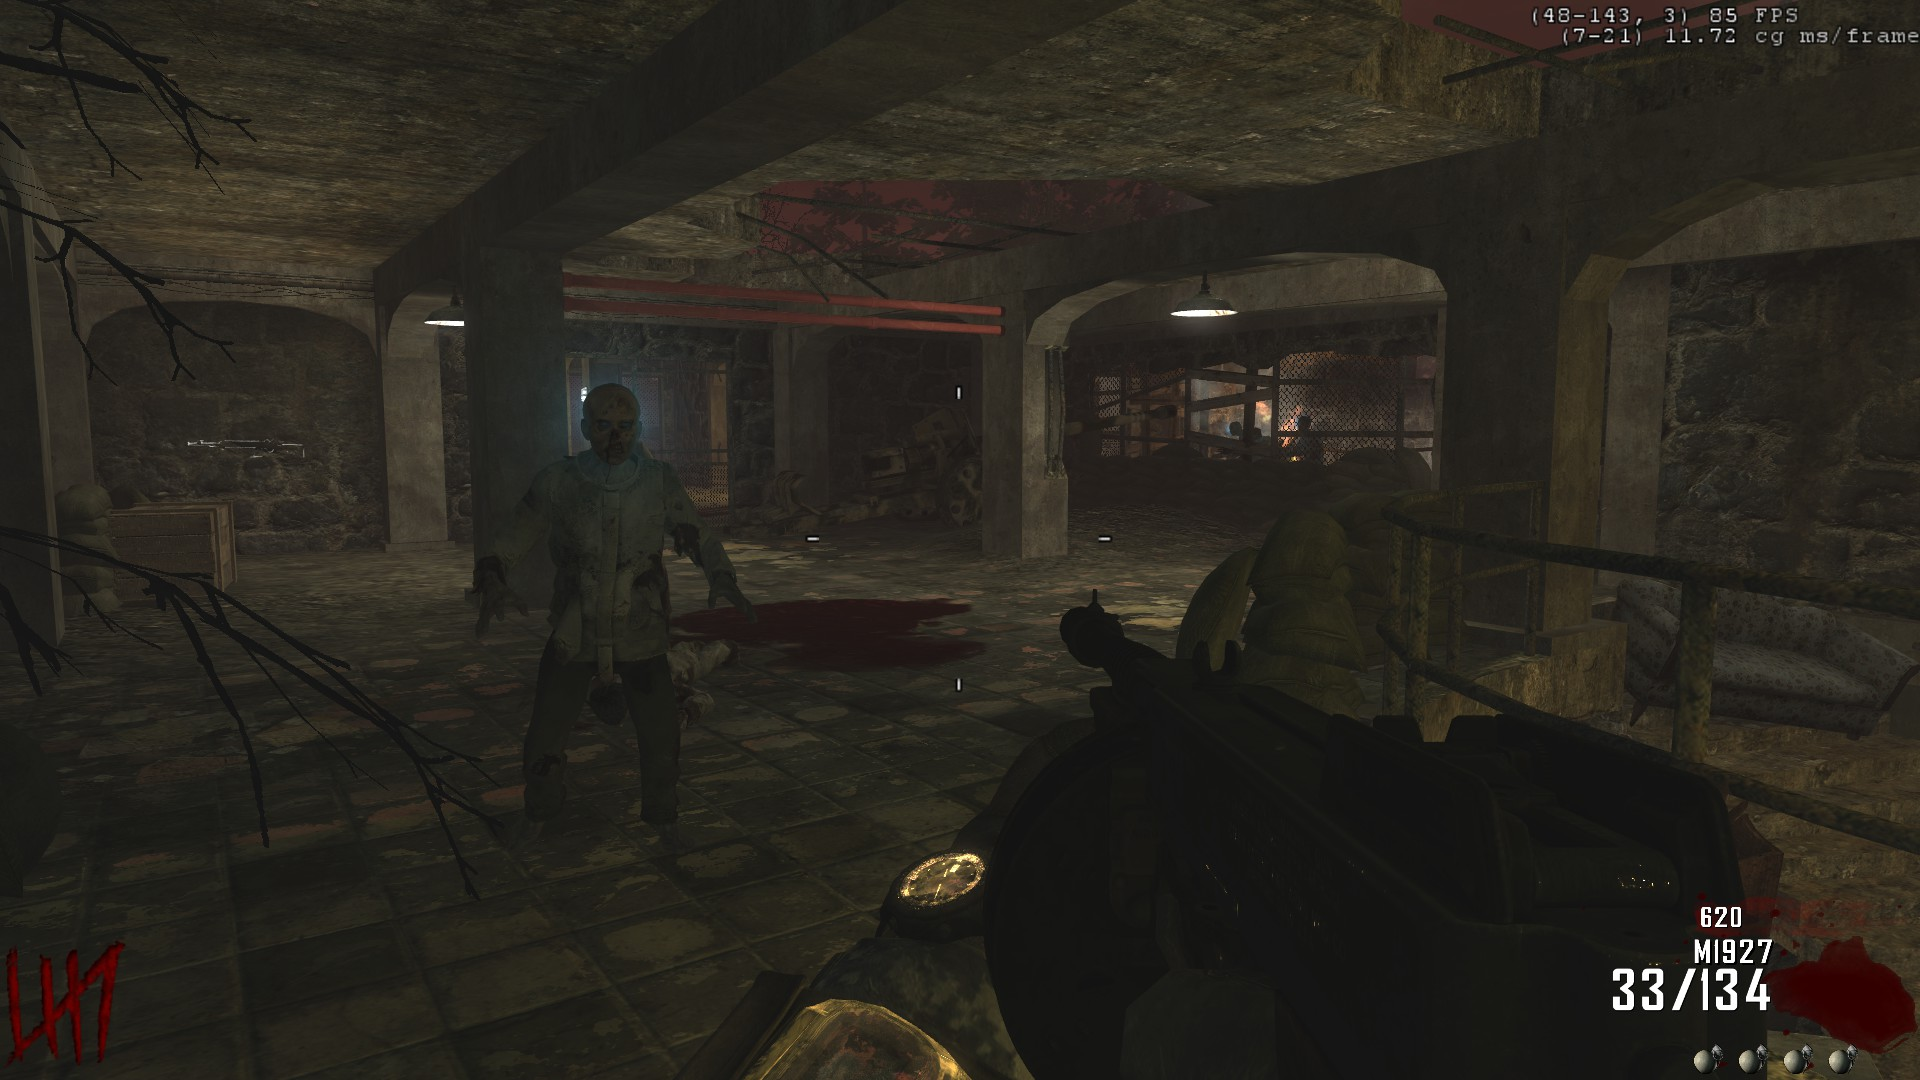 Nacht der untoten reimagined version 21 page 1 map releases nacht der untoten reimagined version 21 page 1 map releases ugx mods gumiabroncs Images